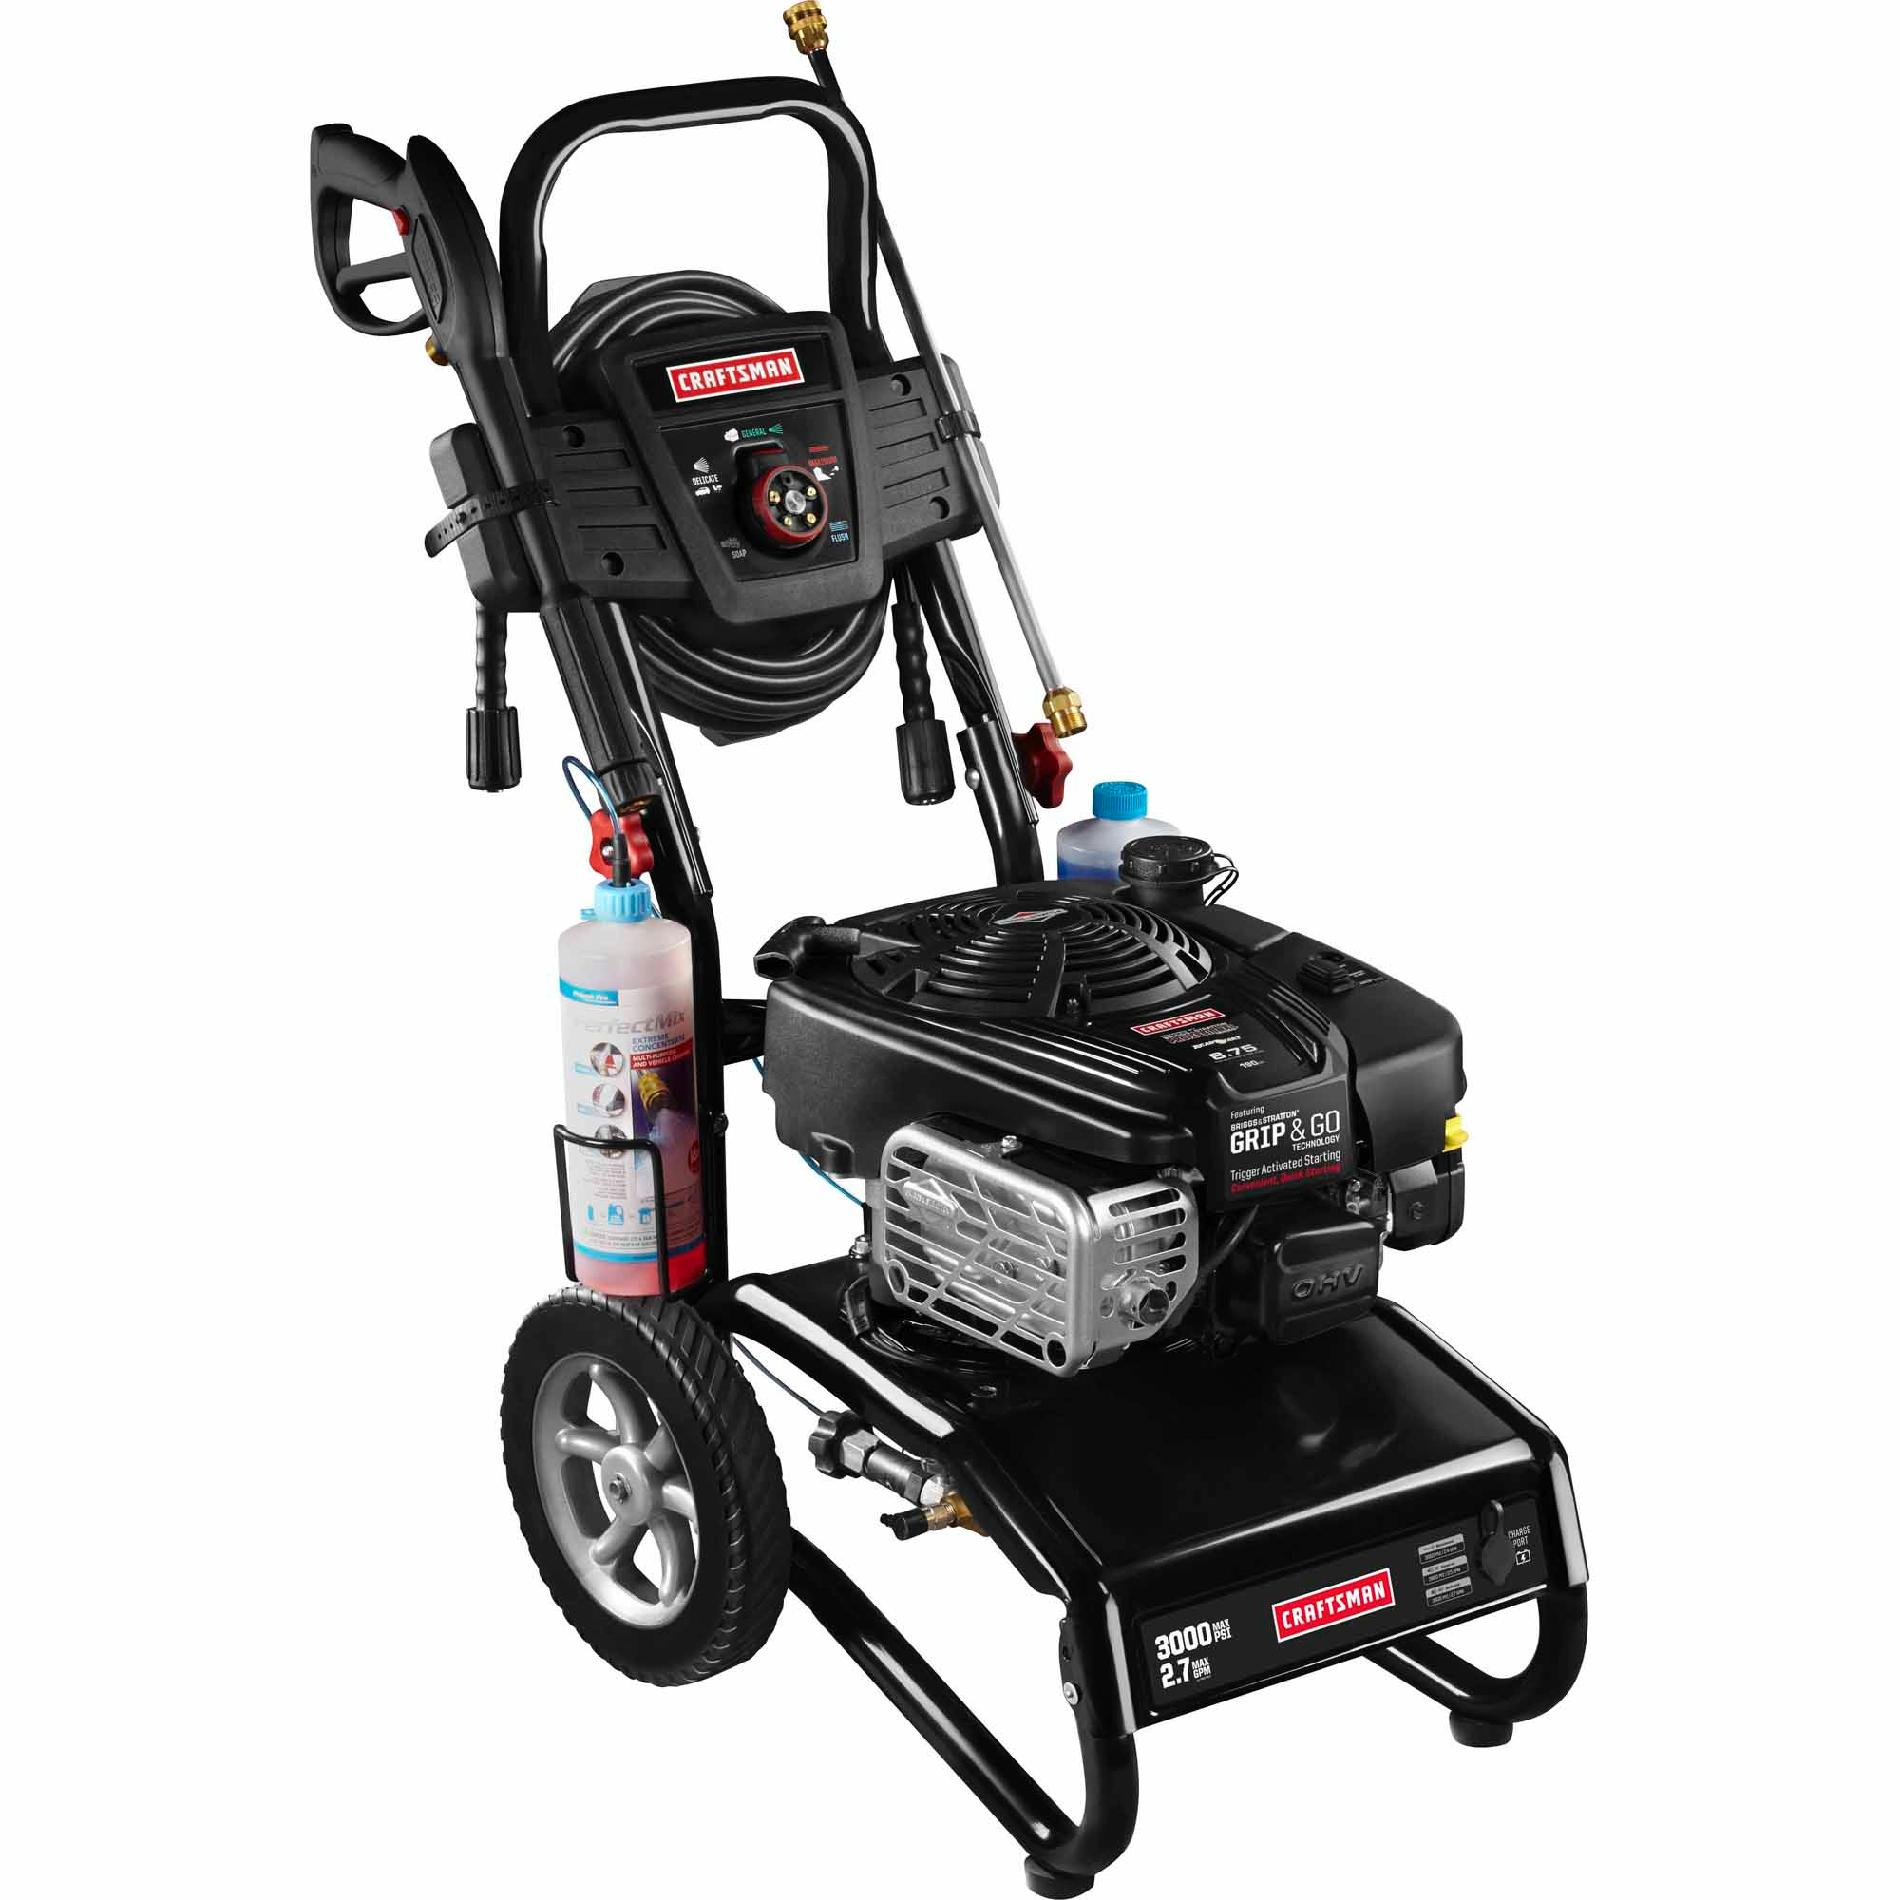 Craftsman 3000 PSI 2.7 GPM Gas-Powered Pressure Washer